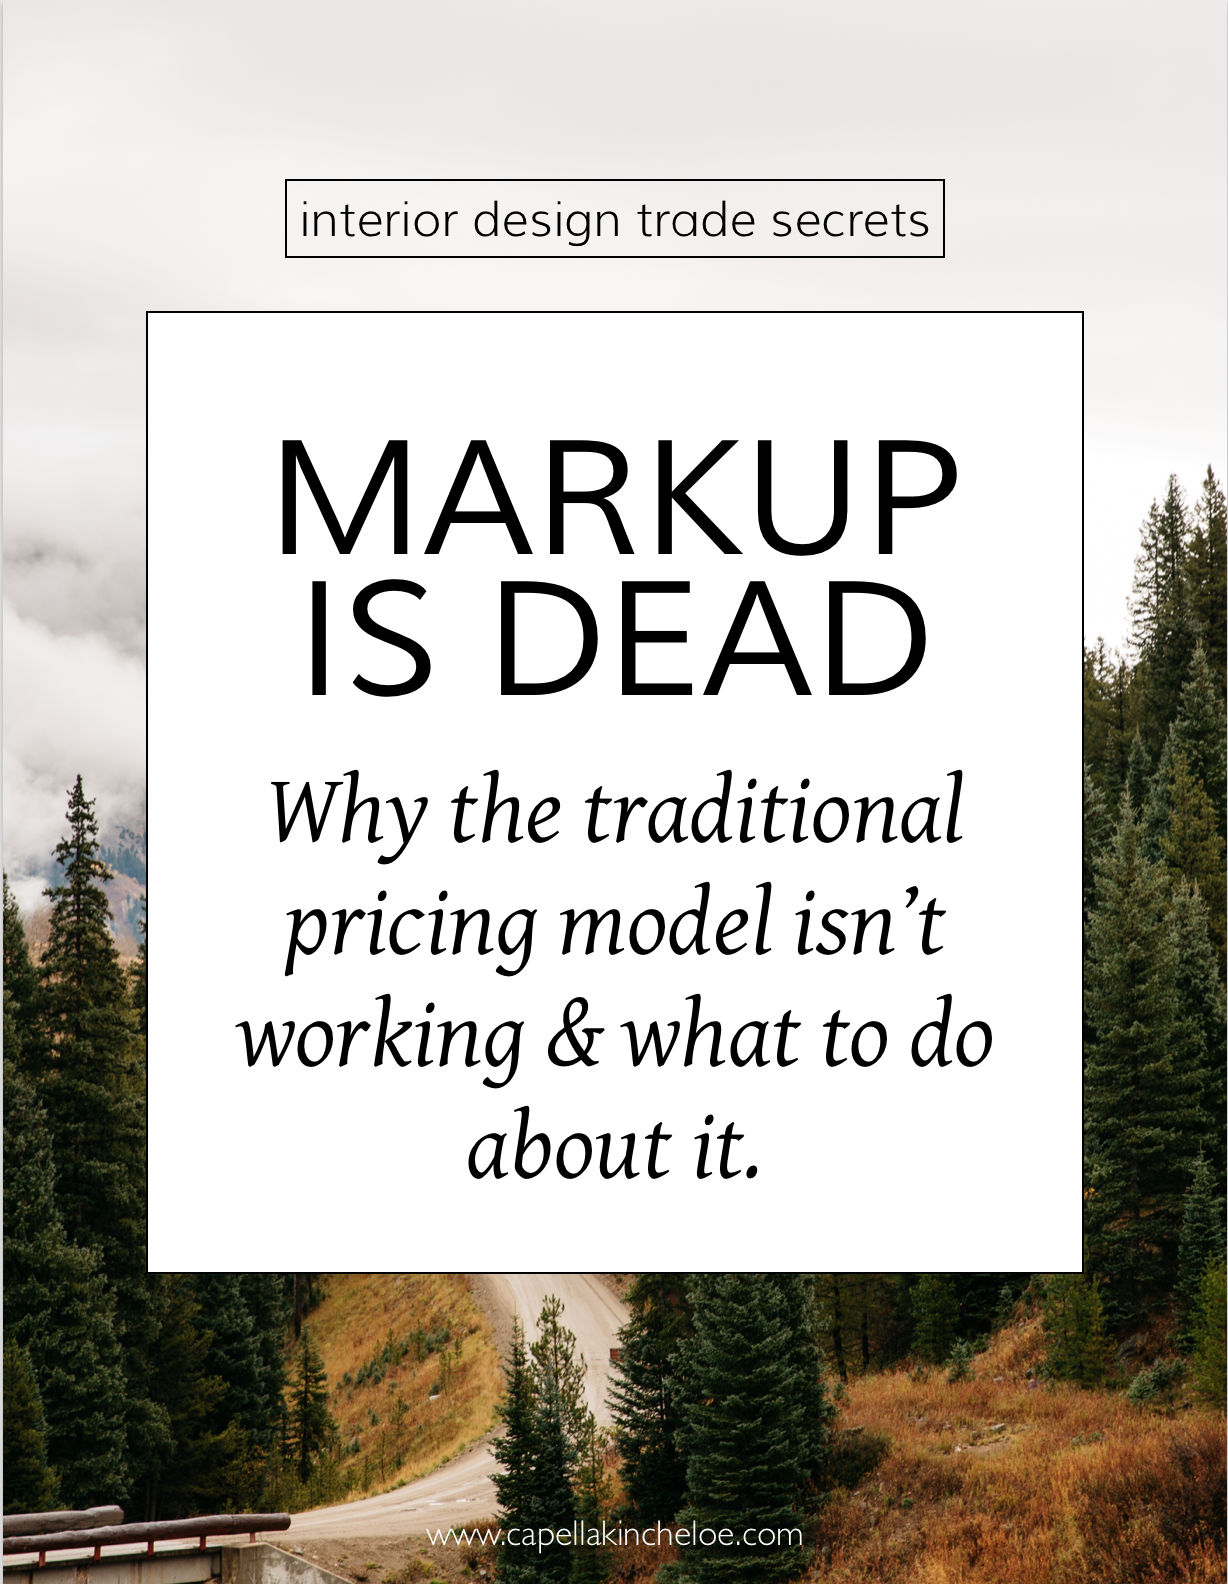 Interior Design Trade Secrets: Markup is Dead. Why the traditional pricing model isn't working and what to do about it.